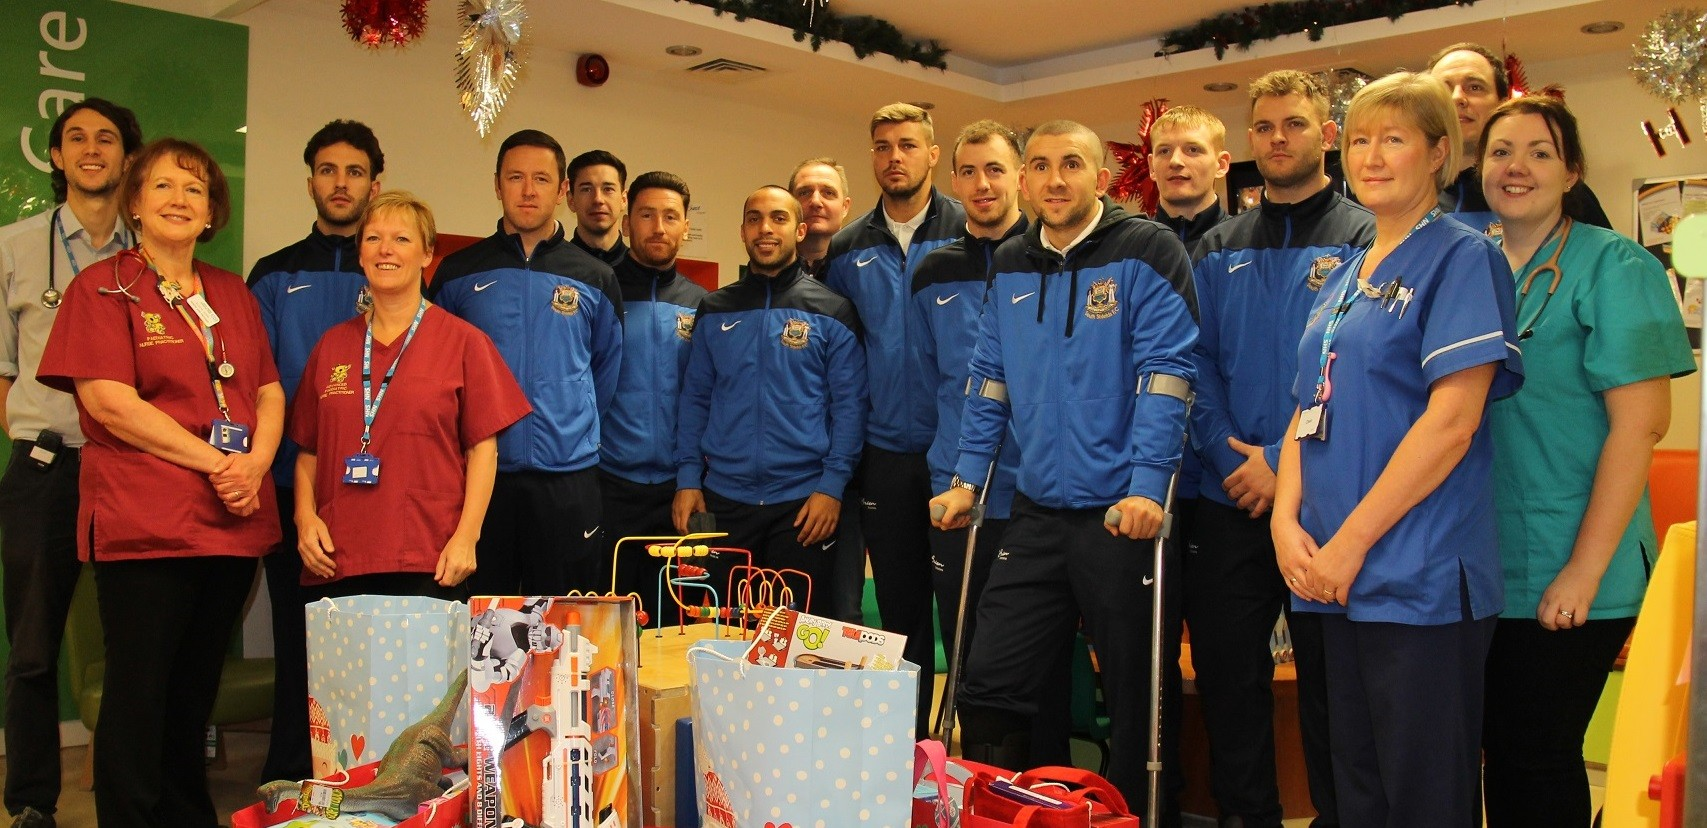 VIDEO: Players deliver presents to youngsters at hospital